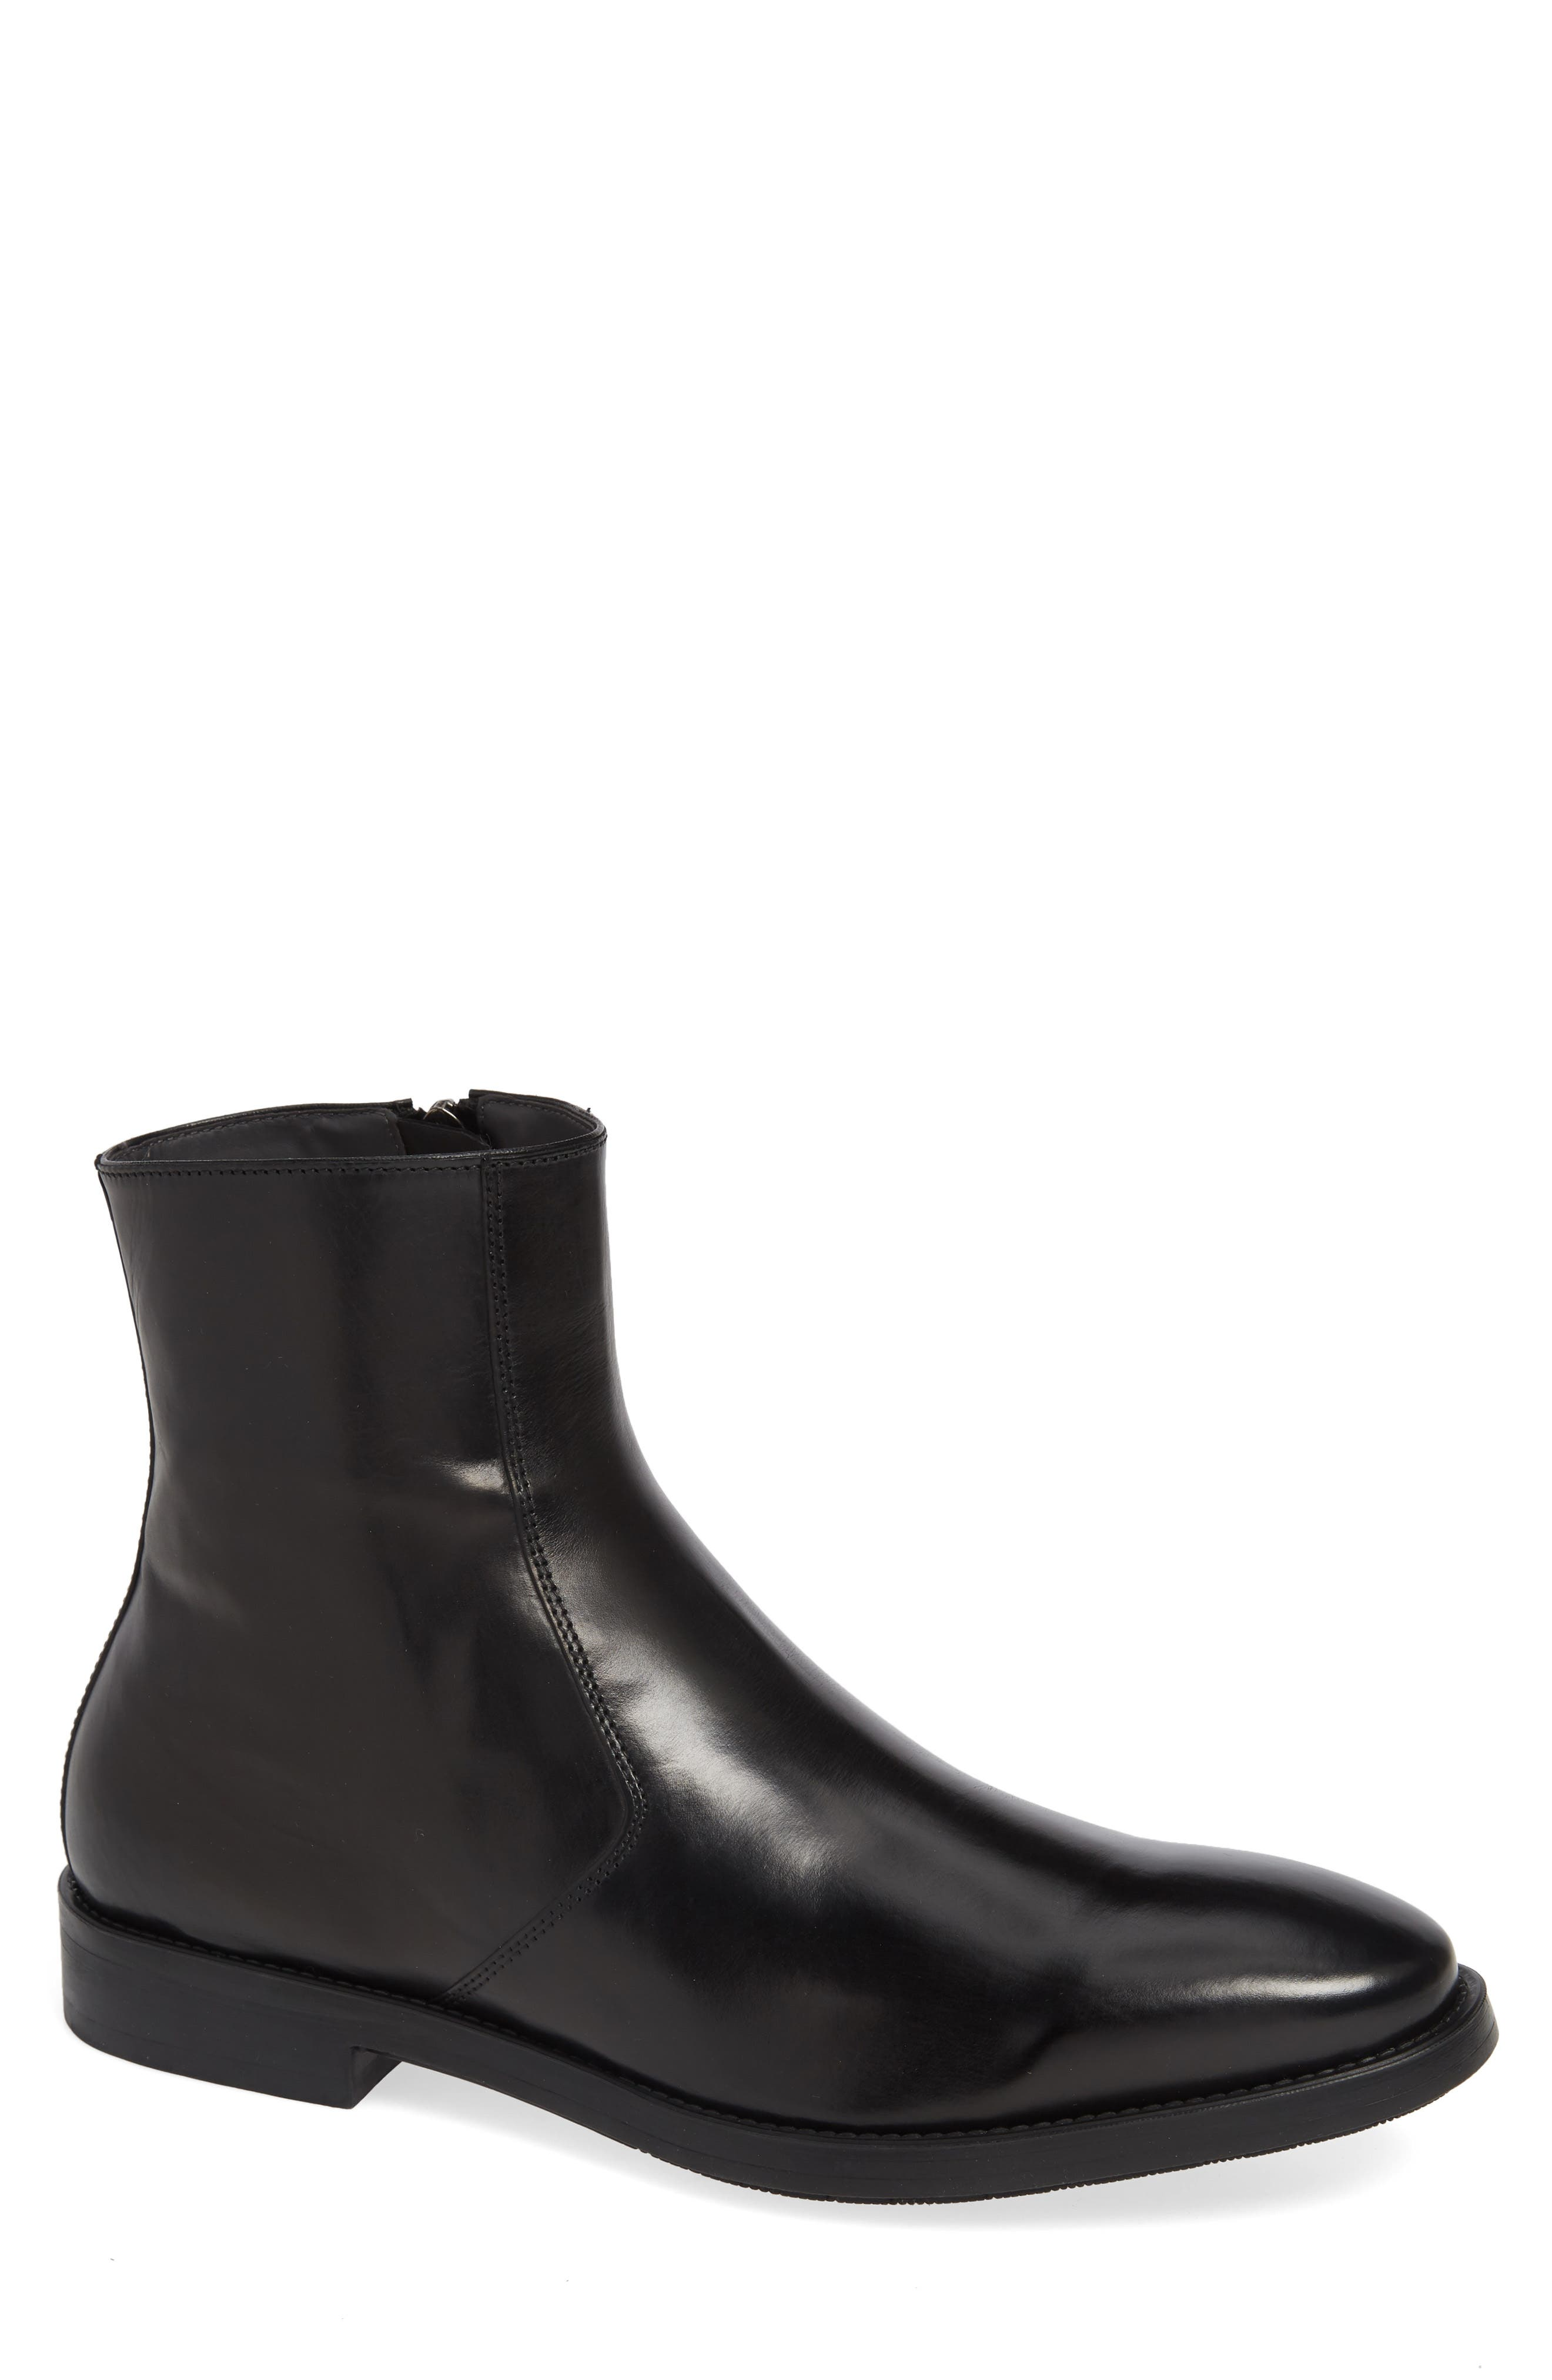 TO BOOT NEW YORK Men'S Rosemont Leather Ankle Boots in Black Leather